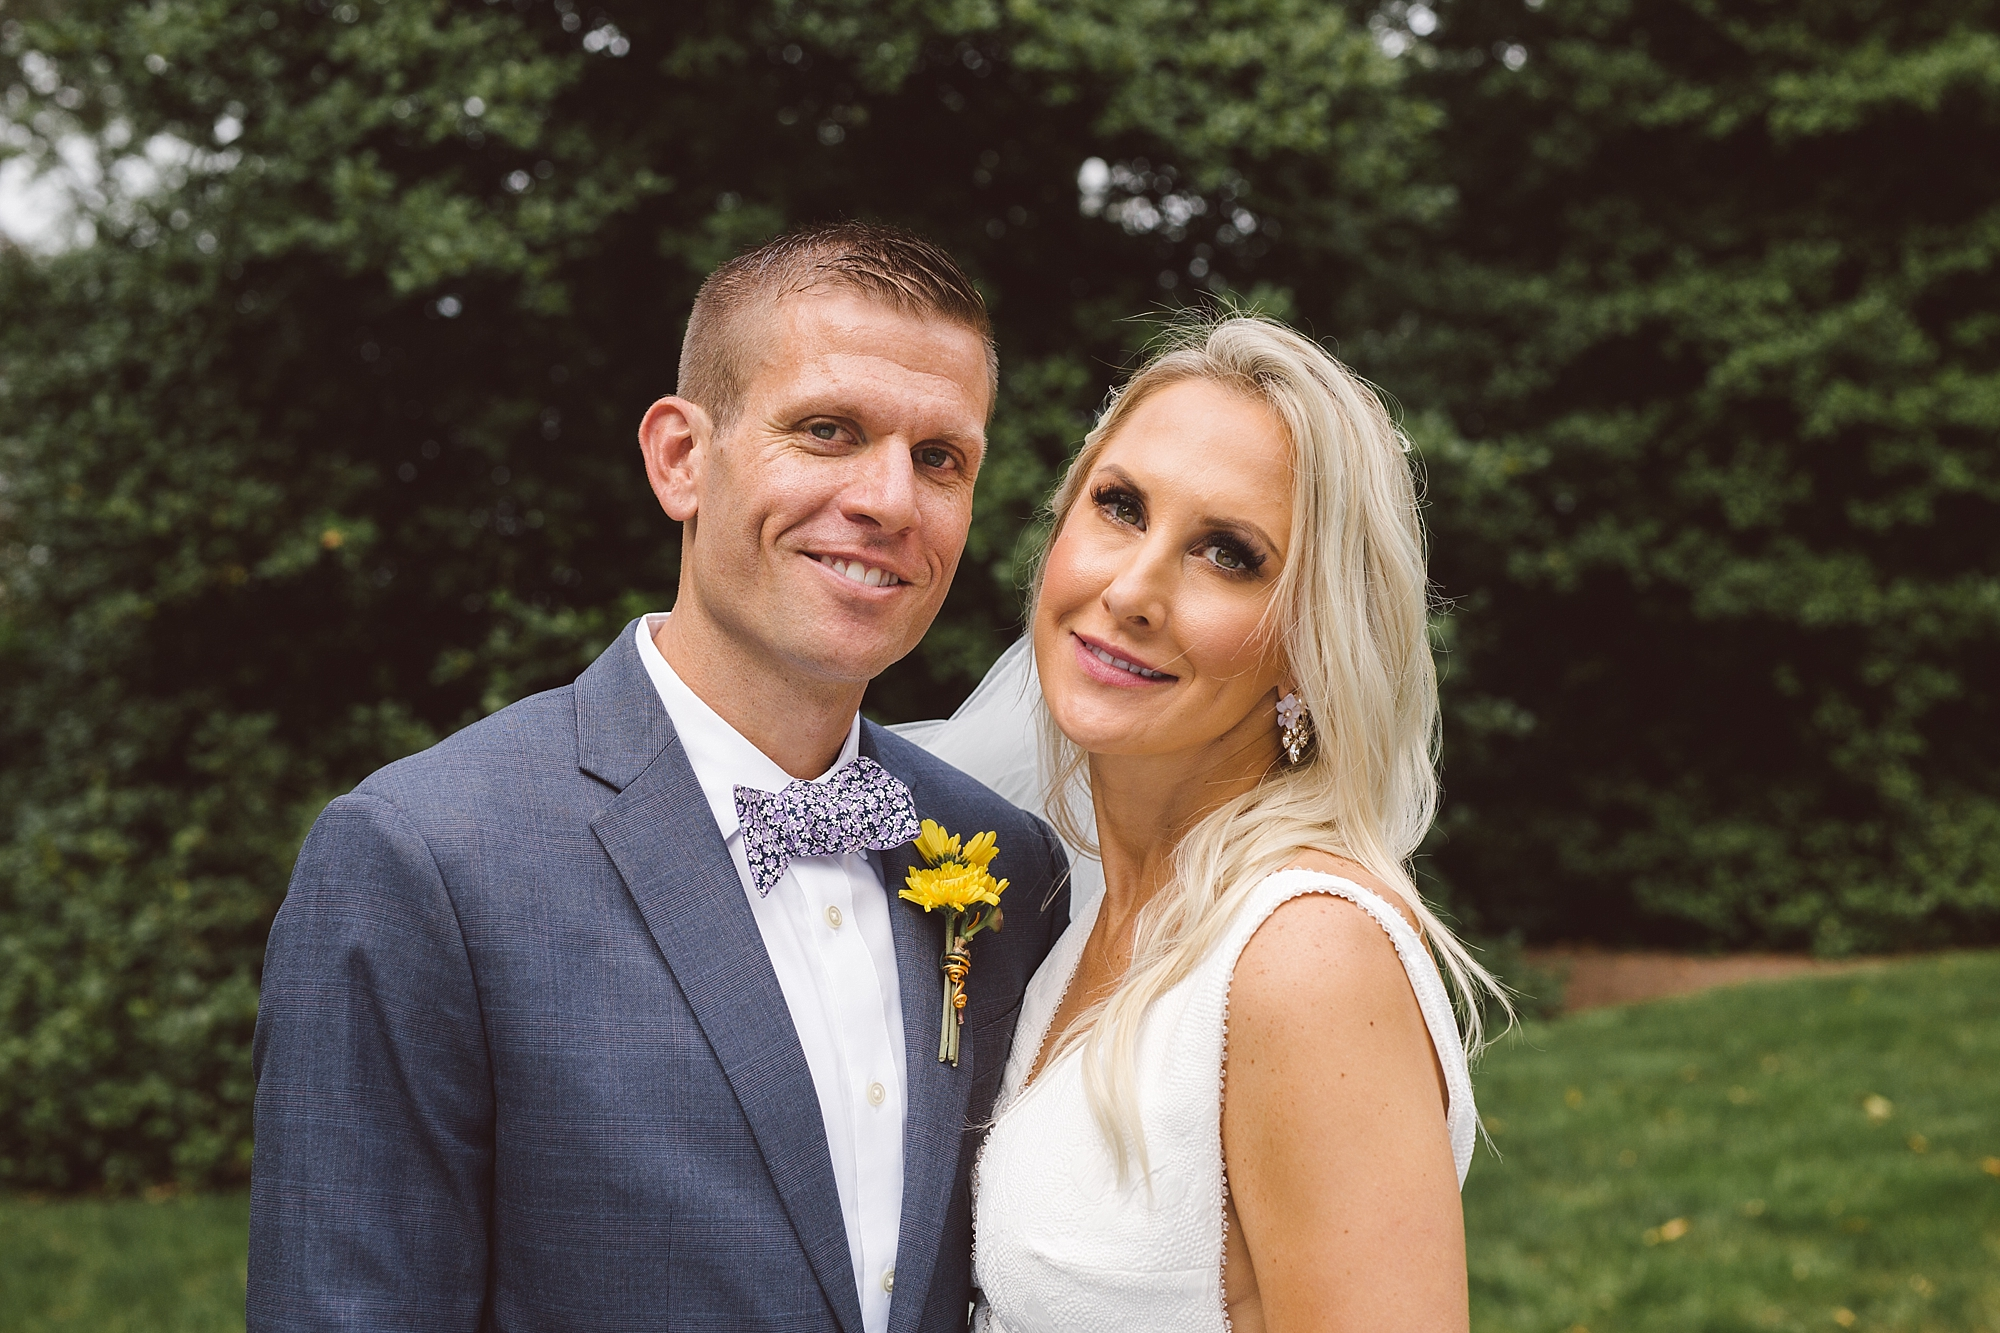 Druemore_Joe_Mac_Creative_Philadelphila_Wedding_Photography_drumore_estate_pequea_Best_lancaster_wedding_venues_0049.jpg